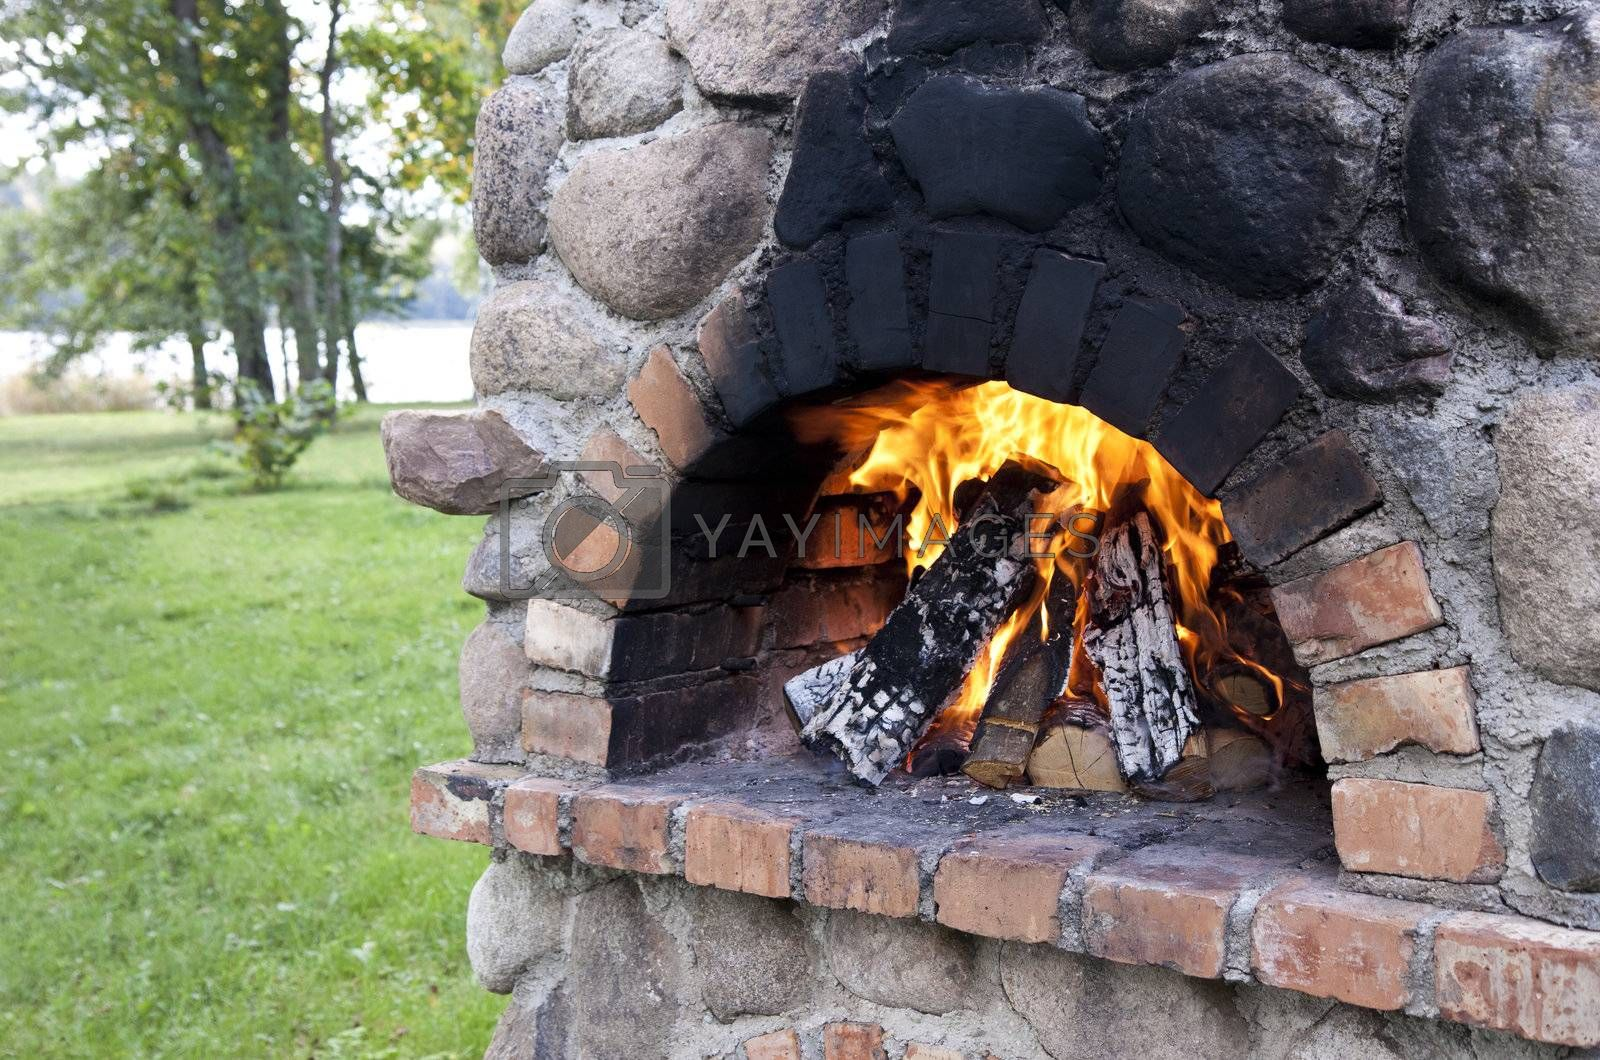 Stationary barbecue fireplace with burning wood at summer day